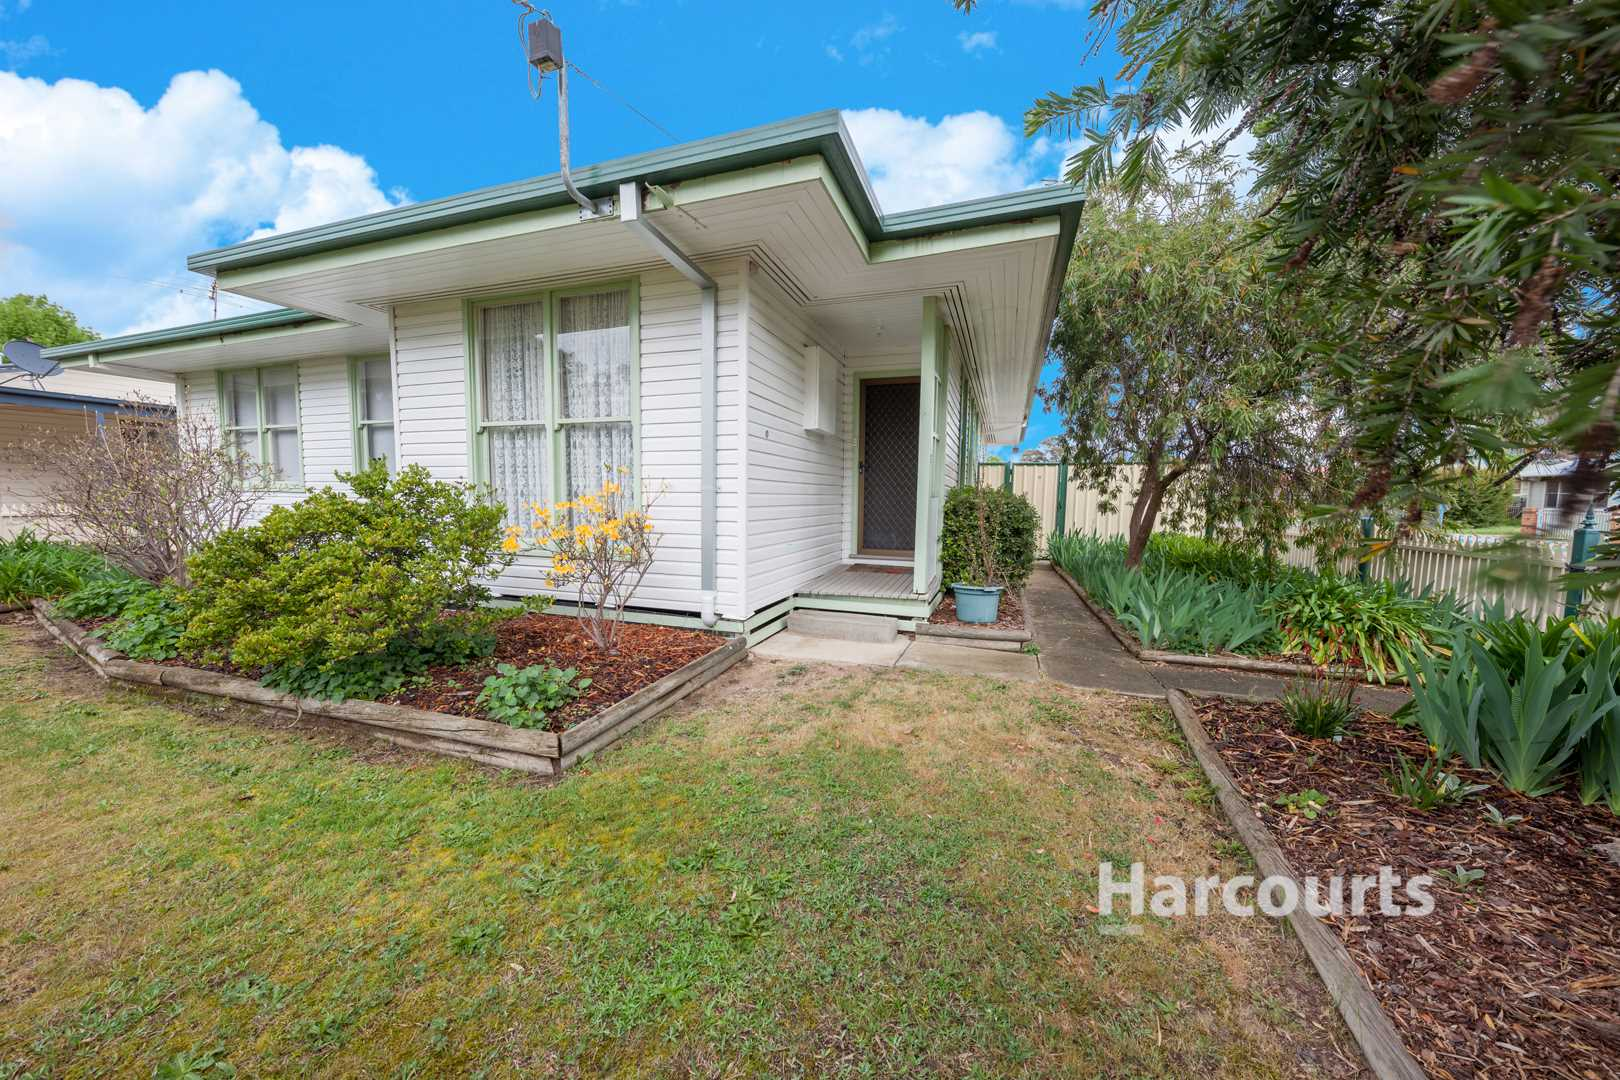 Great Home With Creek Views And Parkland - 615M2